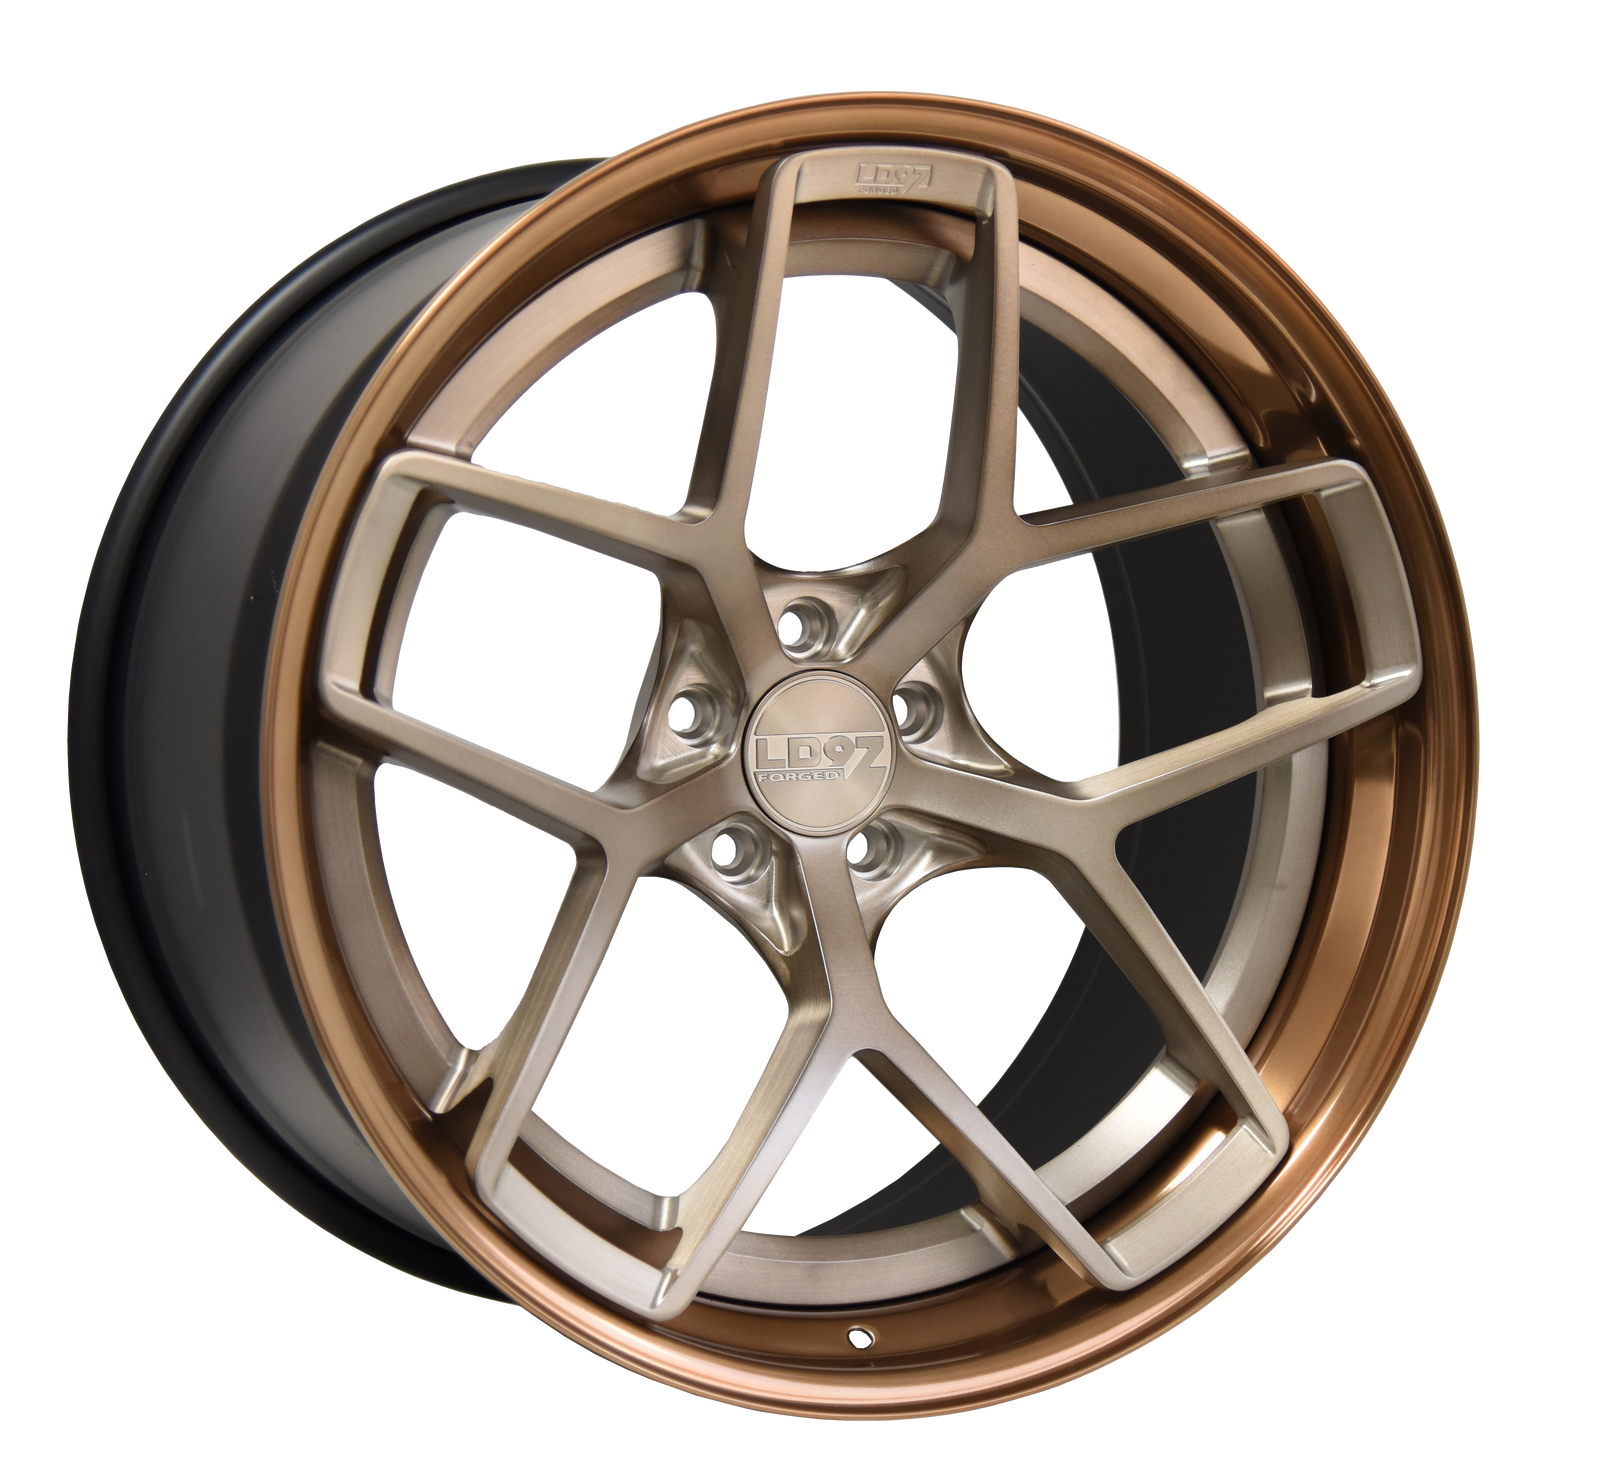 LD97 FORGED LD02.5  OLIVE BRONZE, LIQUID BRONZE OUTER.